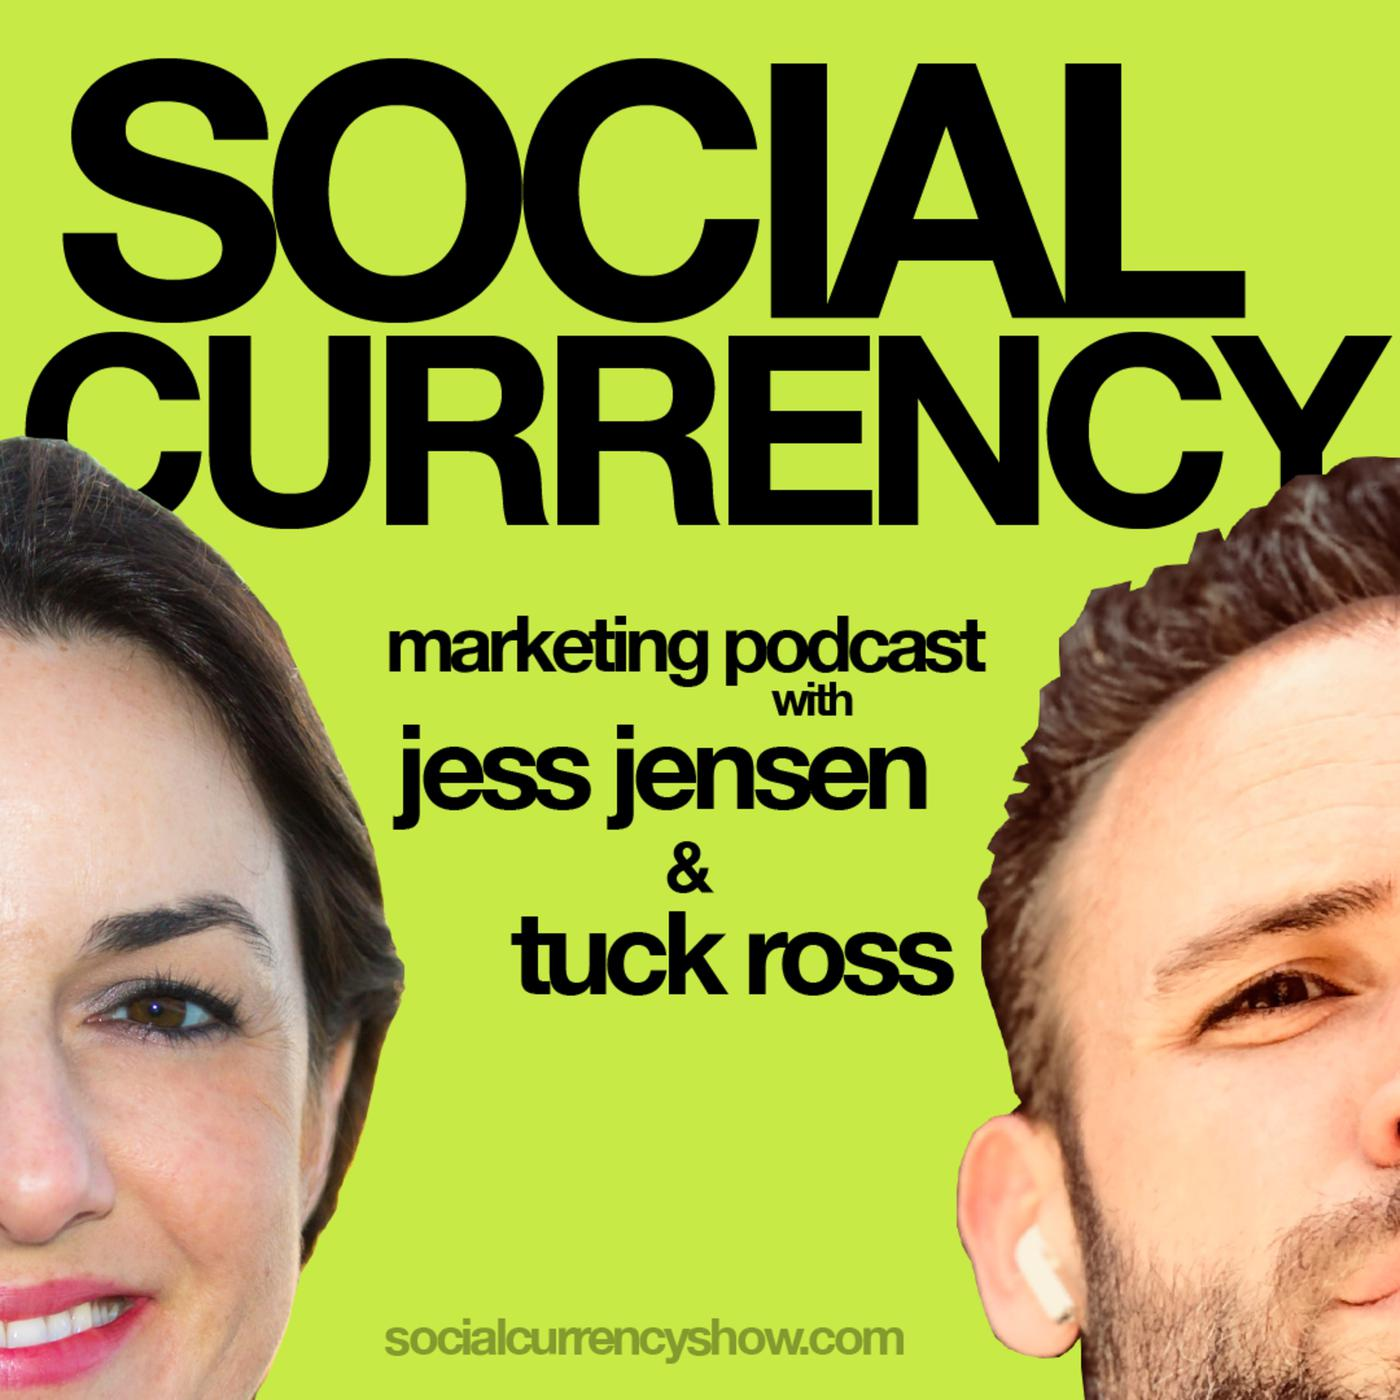 Social Currency (podcast) - Jess Jensen and Tuck Ross